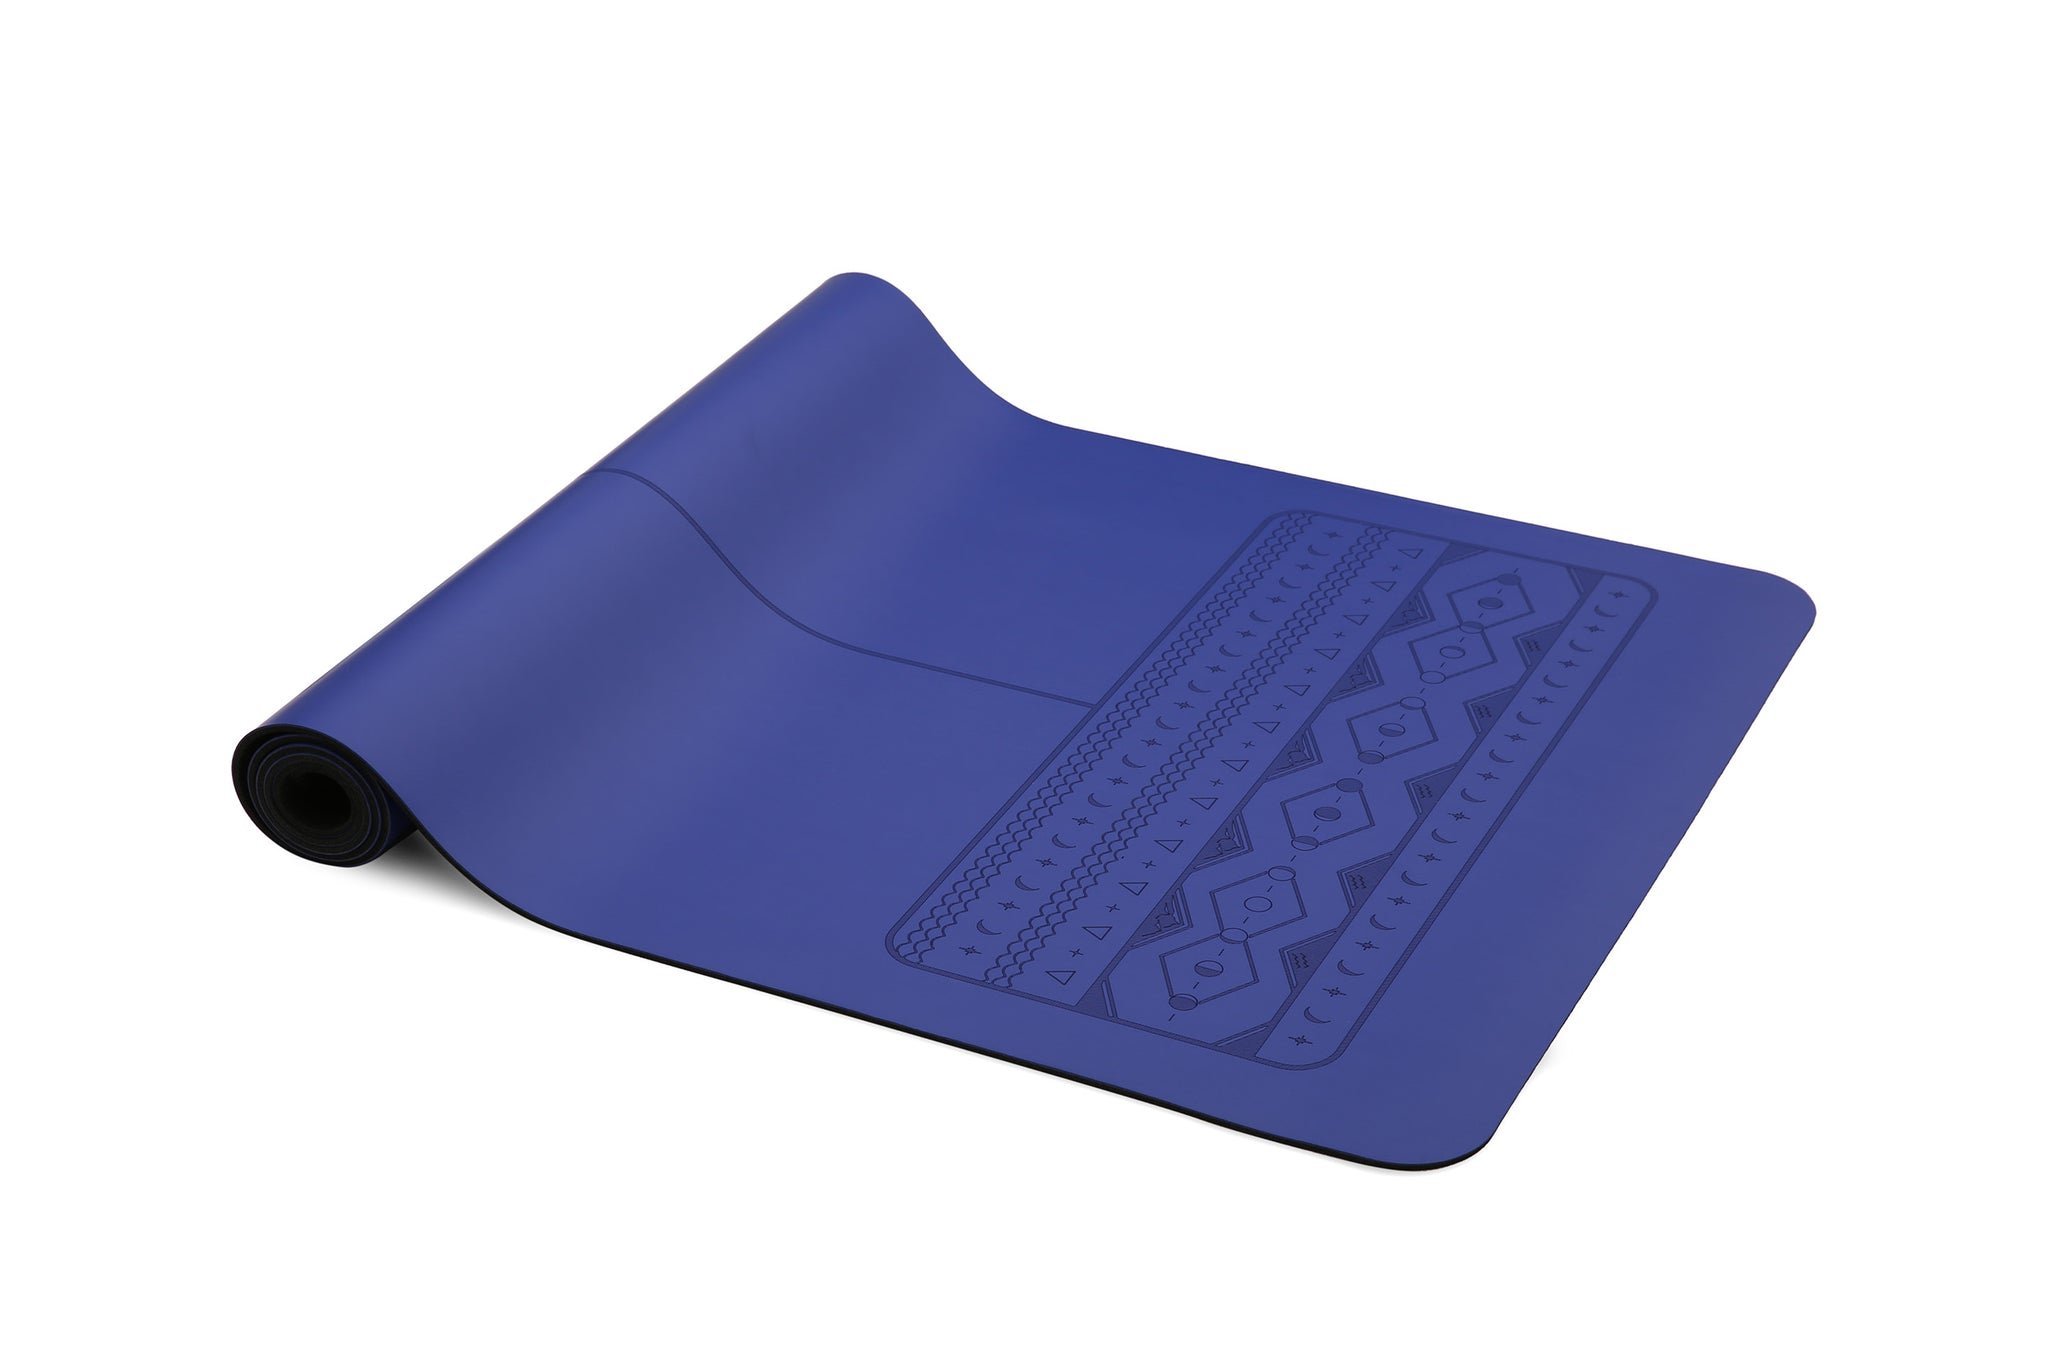 Lunar Paws - Natural rubber extreme grip yoga mat blue